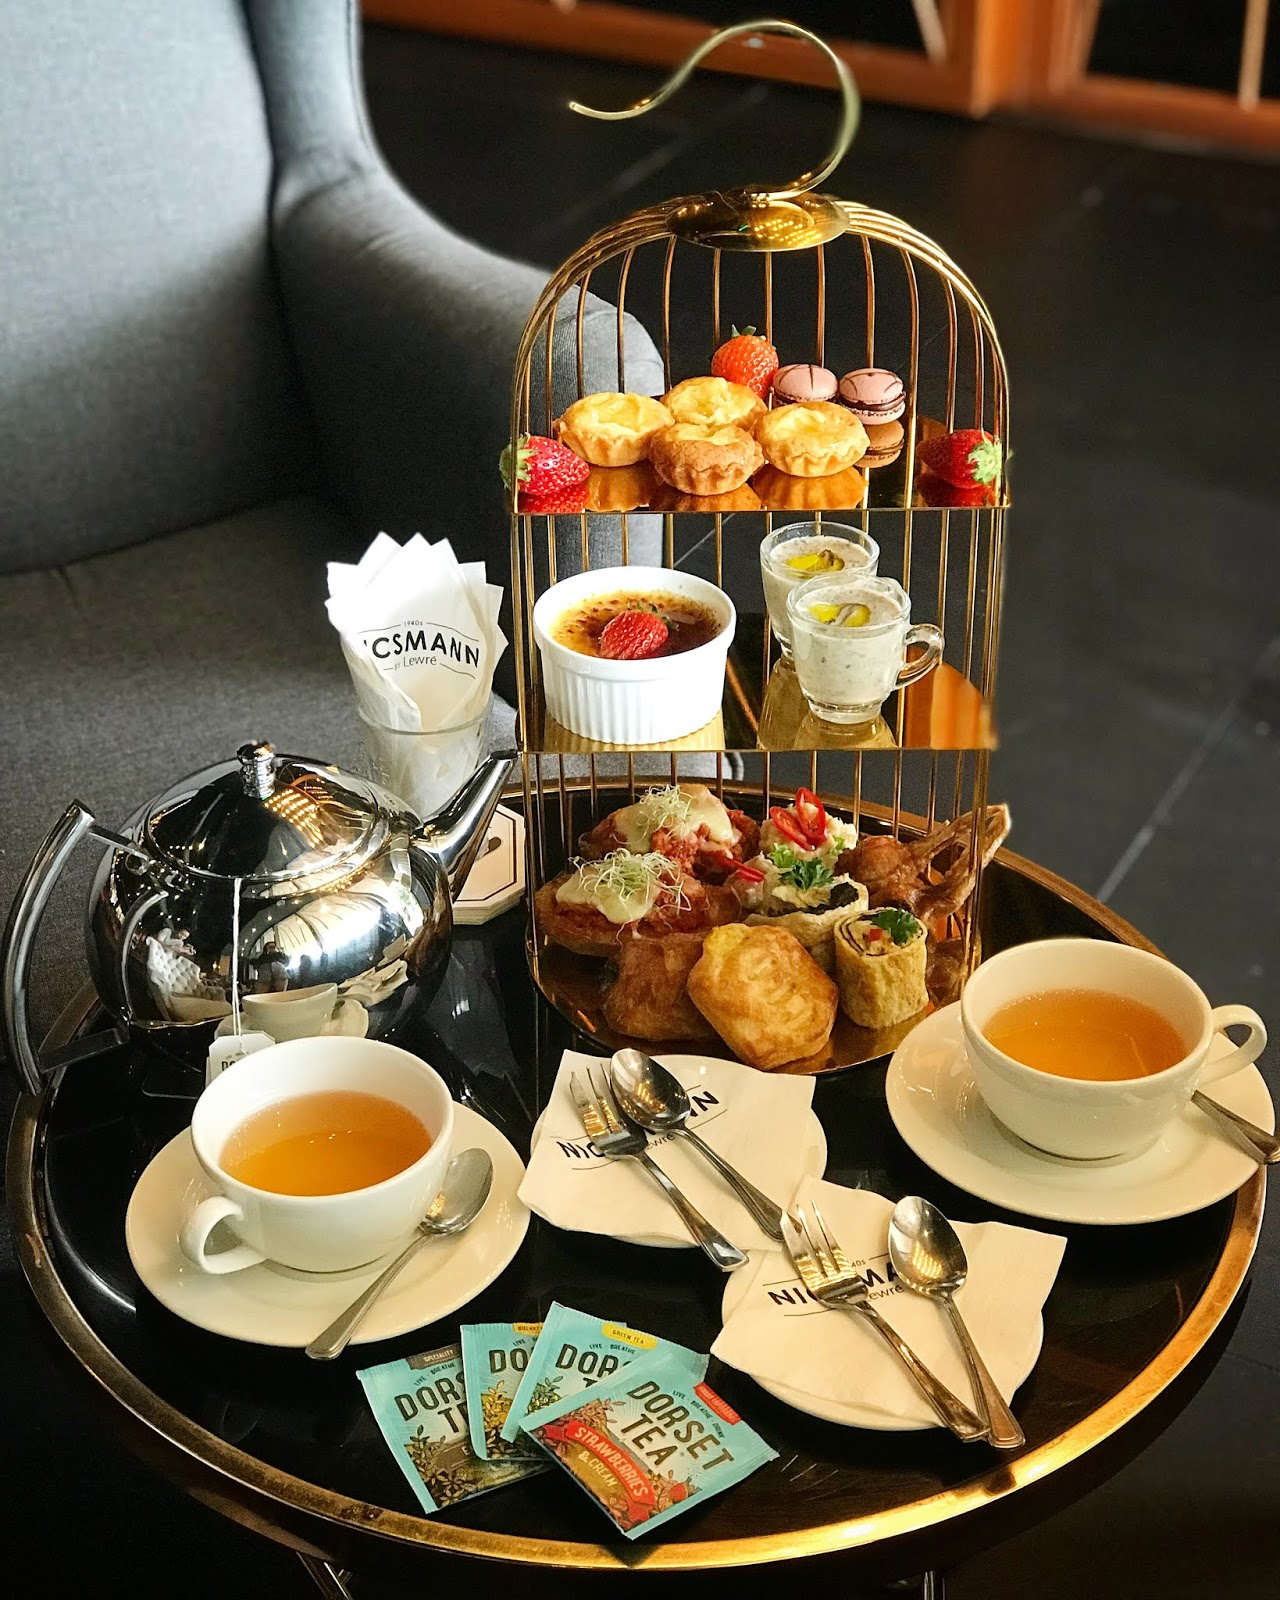 [High Tea Review] Discover 'Hi-Tea On the Park' @ Nicsmann 1940s by Lewre, The Starling Mall